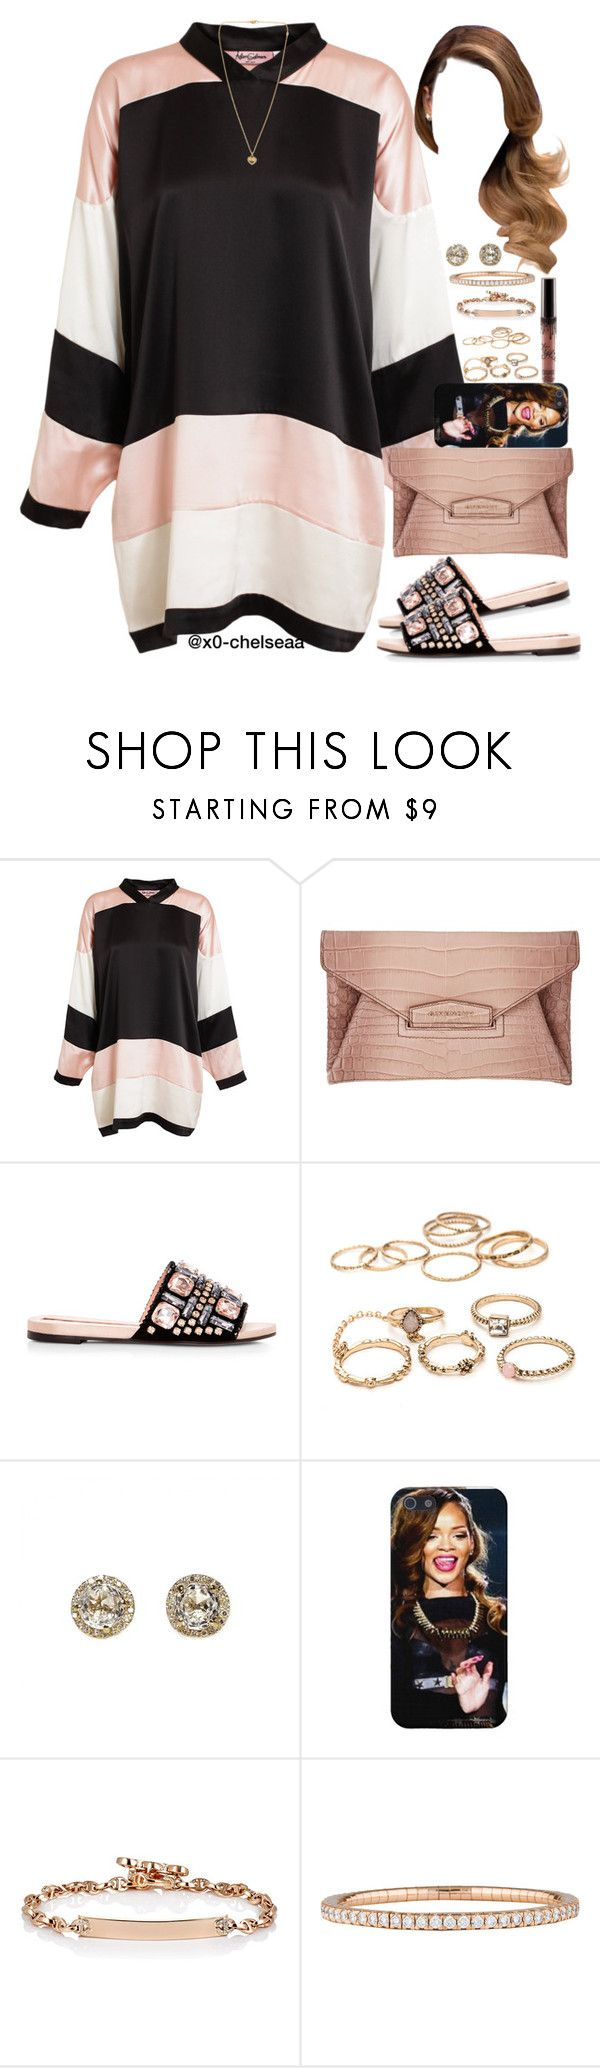 """""""law // yo gotti ft. e-40"""" by x0-chelseaa ❤ liked on Polyvore featuring Adam Selman, Givenchy, Rochas, EF Collection, Hoorsenbuhs, Mattia Cielo and Michael Kors"""